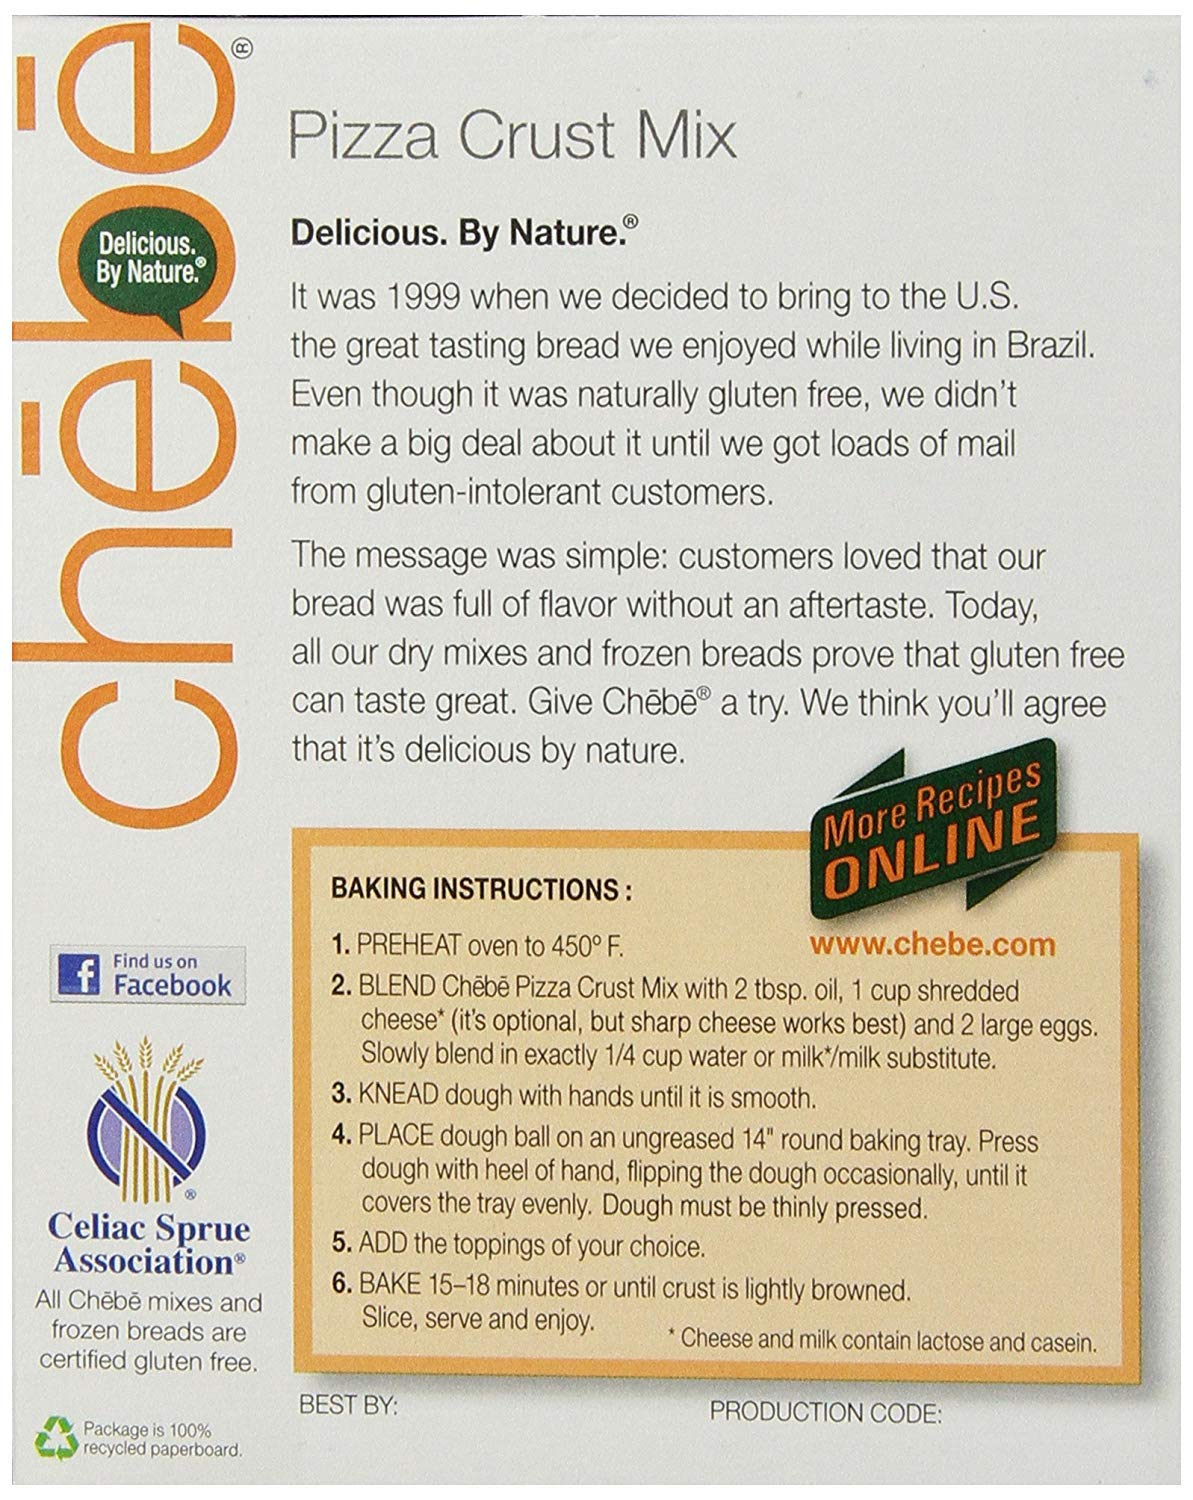 Chebe Bread Pizza Crust Mix, Gluten Free, 7.5-Ounce Box (Pack of 8) (Limited Edition) by Chebe Bread. (Image #3)